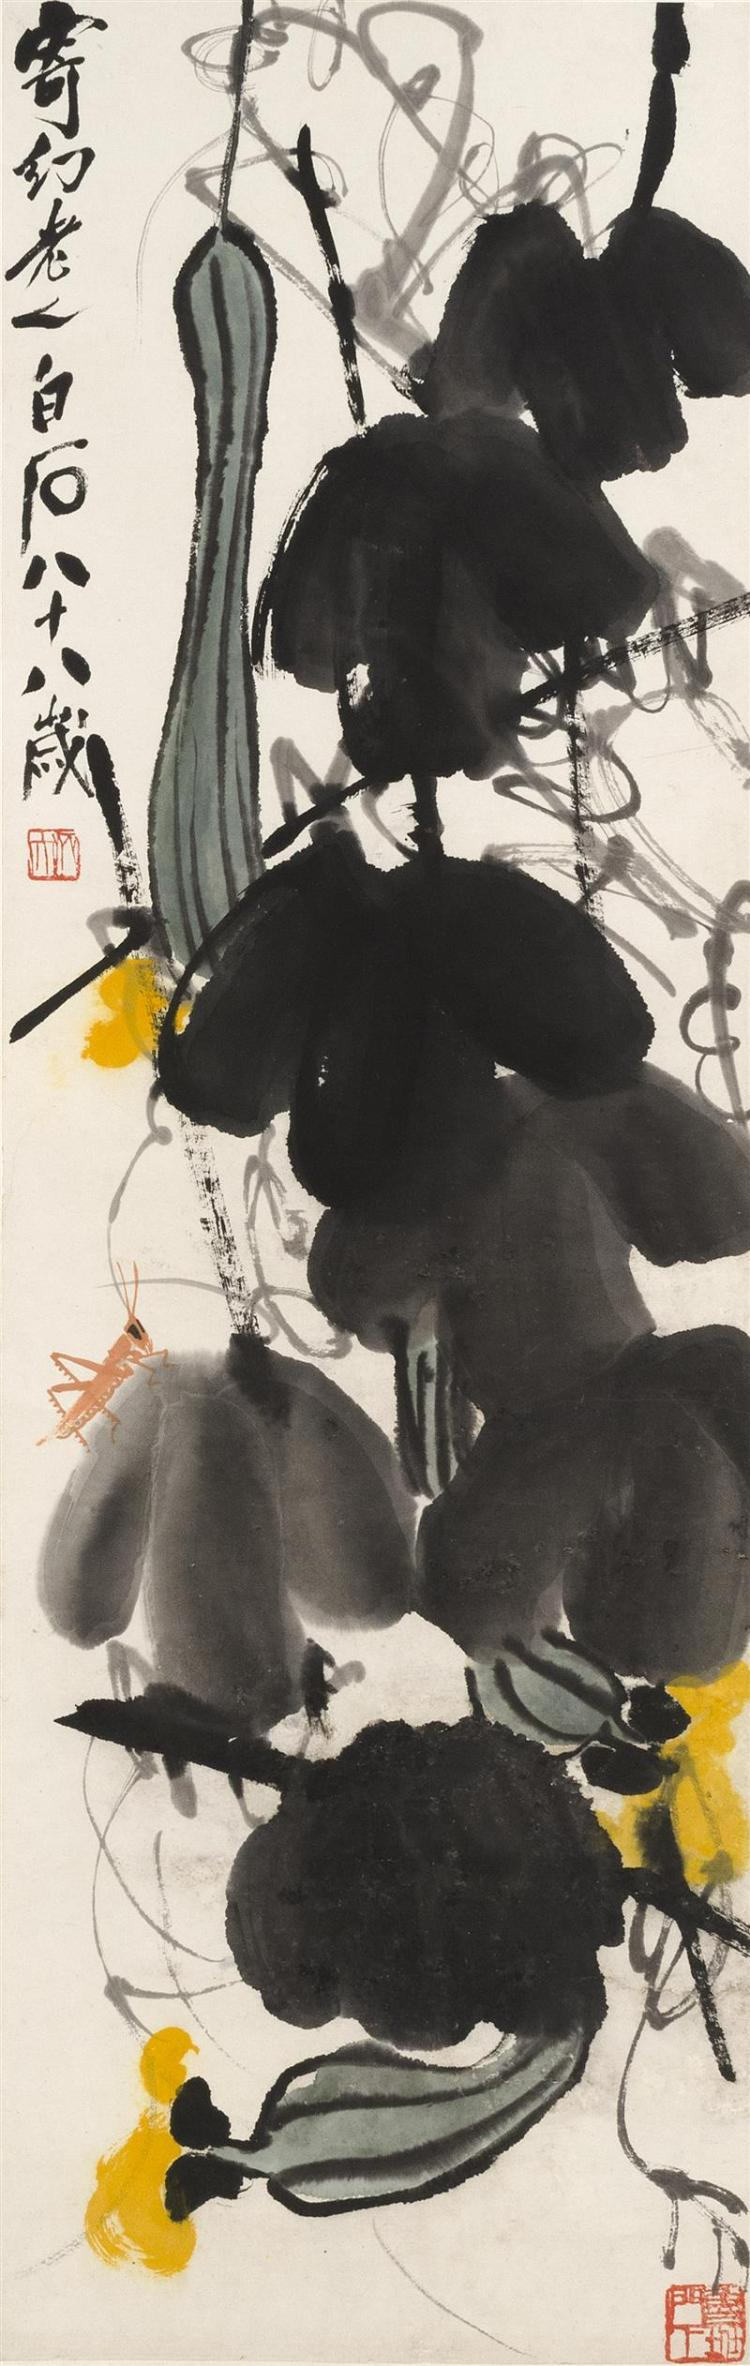 SCROLL PAINTING ON PAPER By Qi Baishi. Depicting gourds and a grasshopper. Signed and marked with two seal marks. 40.5